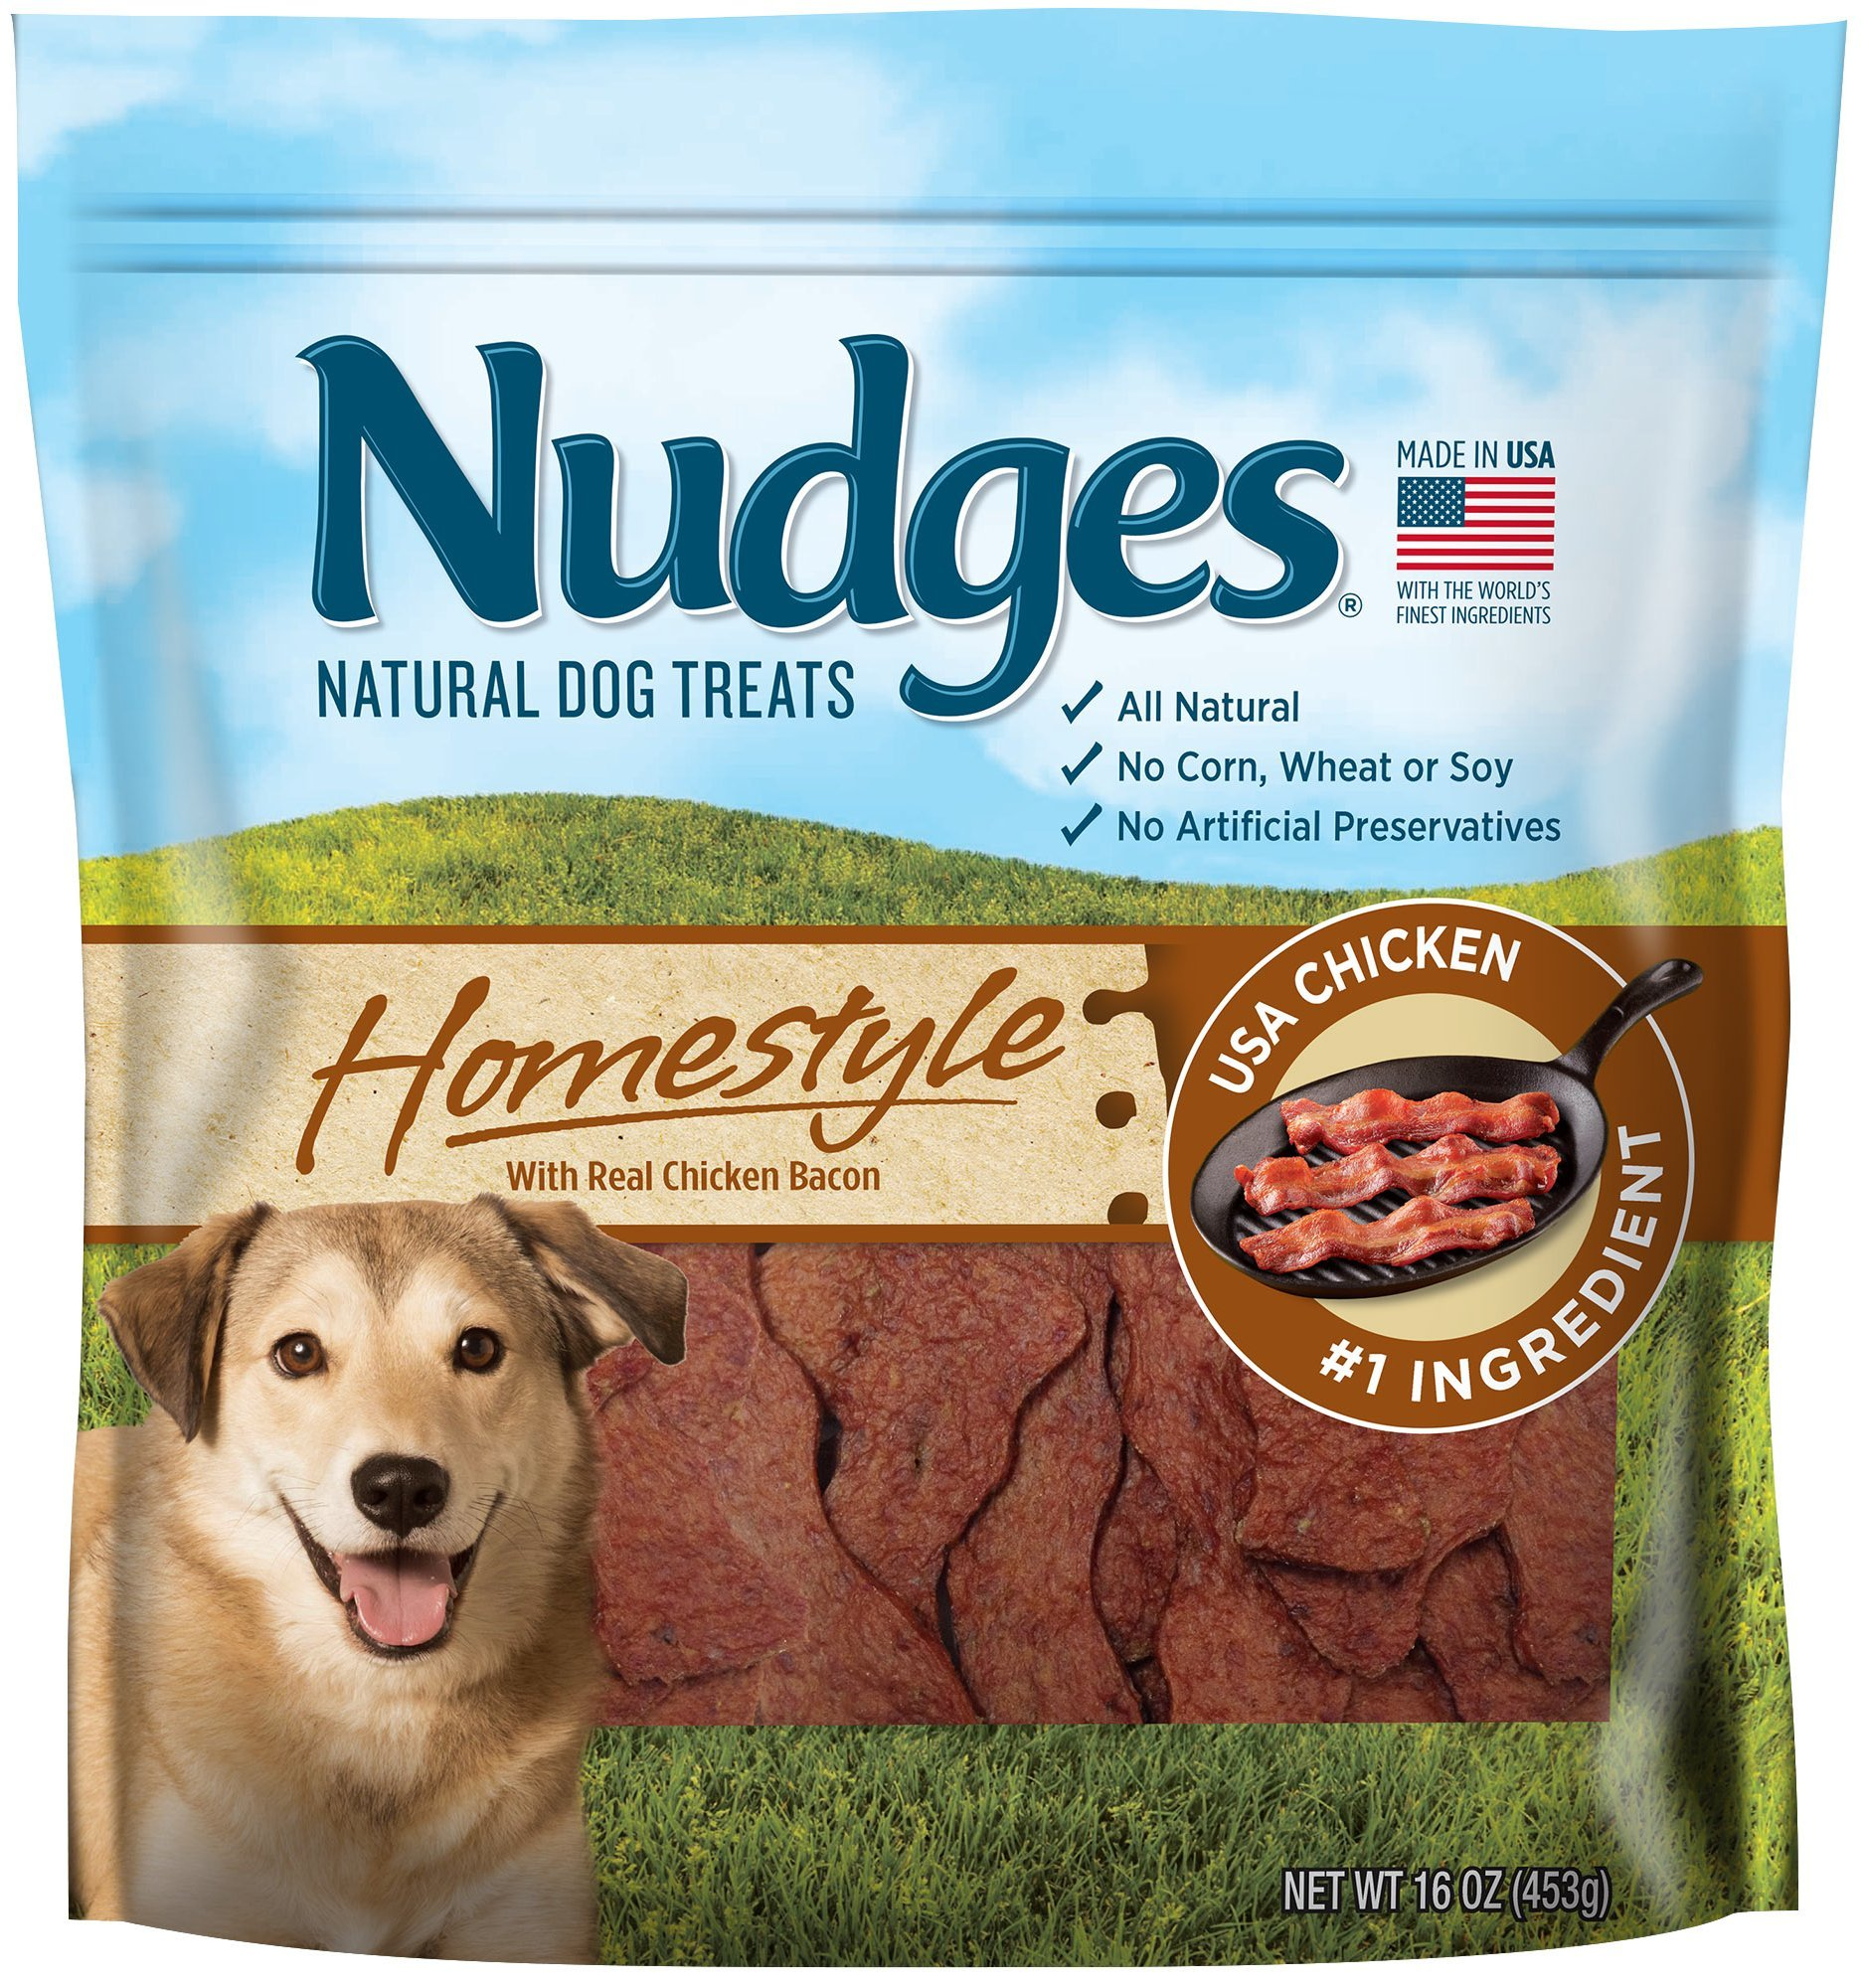 Nudges Chicken Bacon Sizzlers Dog Treats, 18 oz